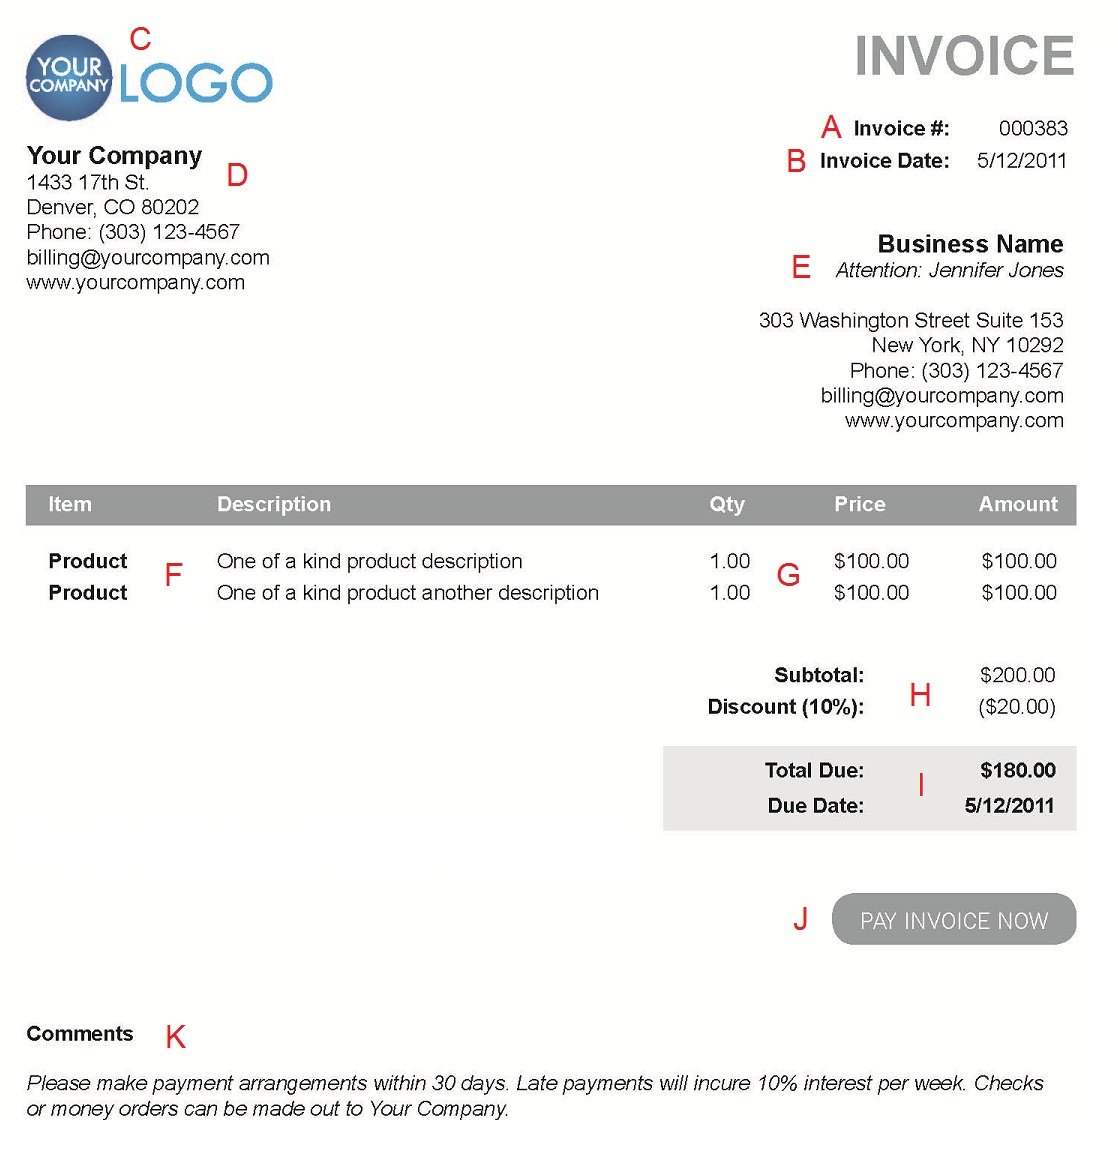 Usdgus  Fascinating The  Different Sections Of An Electronic Payment Invoice With Goodlooking A  With Astounding Vat Invoice Sample Also Android Invoicing App In Addition What Is On An Invoice And Best Invoicing App For Ipad As Well As Invoice Forma Additionally Invoice Late Payment Terms From Paysimplecom With Usdgus  Goodlooking The  Different Sections Of An Electronic Payment Invoice With Astounding A  And Fascinating Vat Invoice Sample Also Android Invoicing App In Addition What Is On An Invoice From Paysimplecom